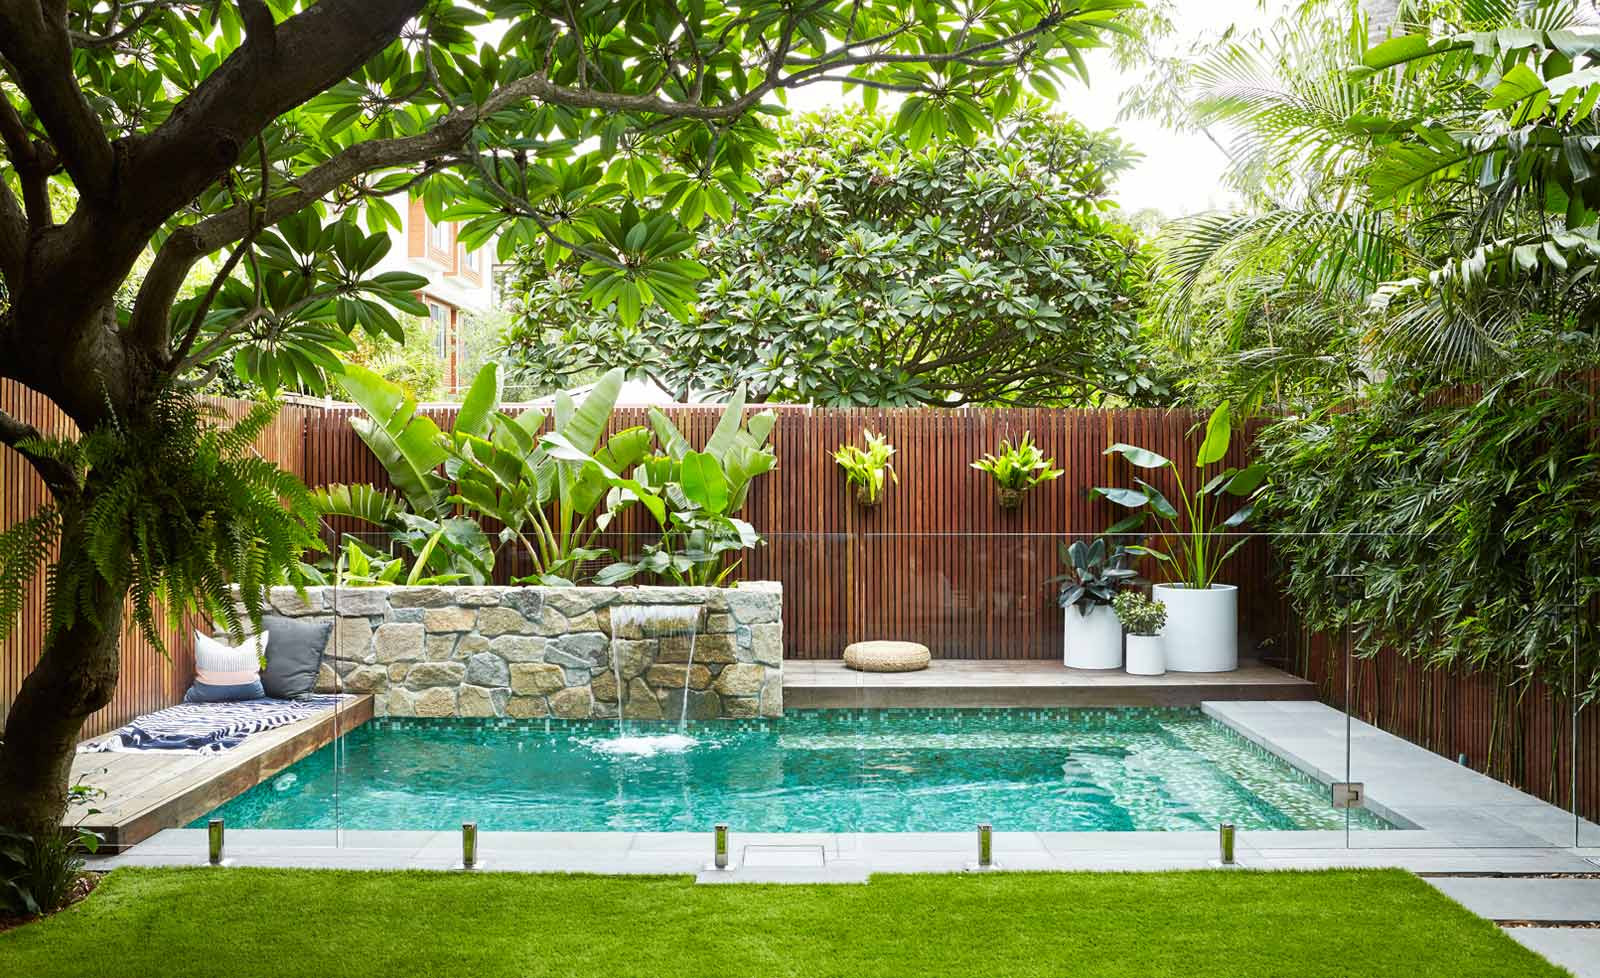 Pool Landscape Design  Trees South Africa Landscapingwith trees around a